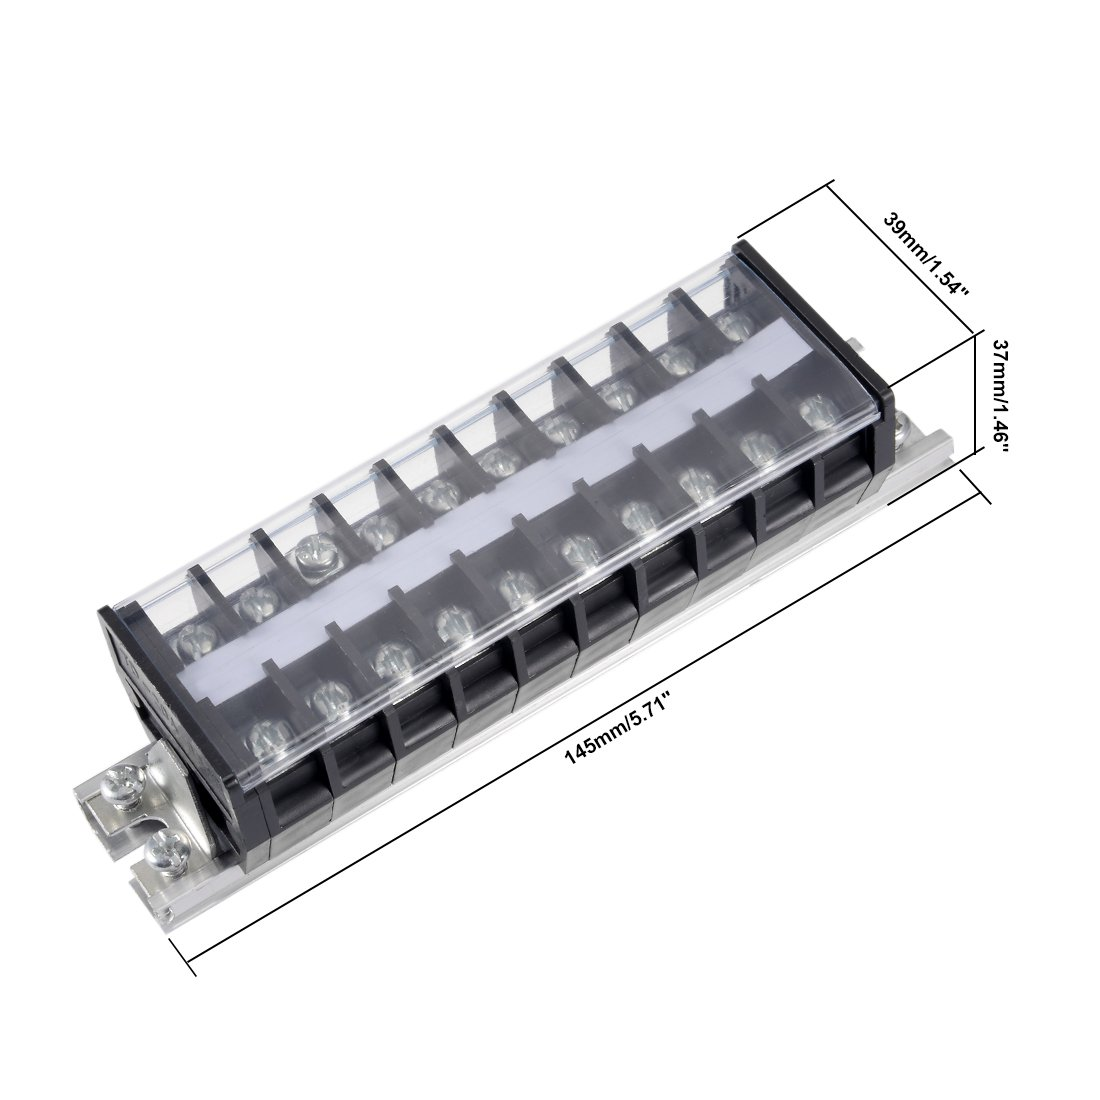 uxcell/® Dual Rows 12 Positions 600V 15A Wire Barrier Block Terminal Strip TB-1512L